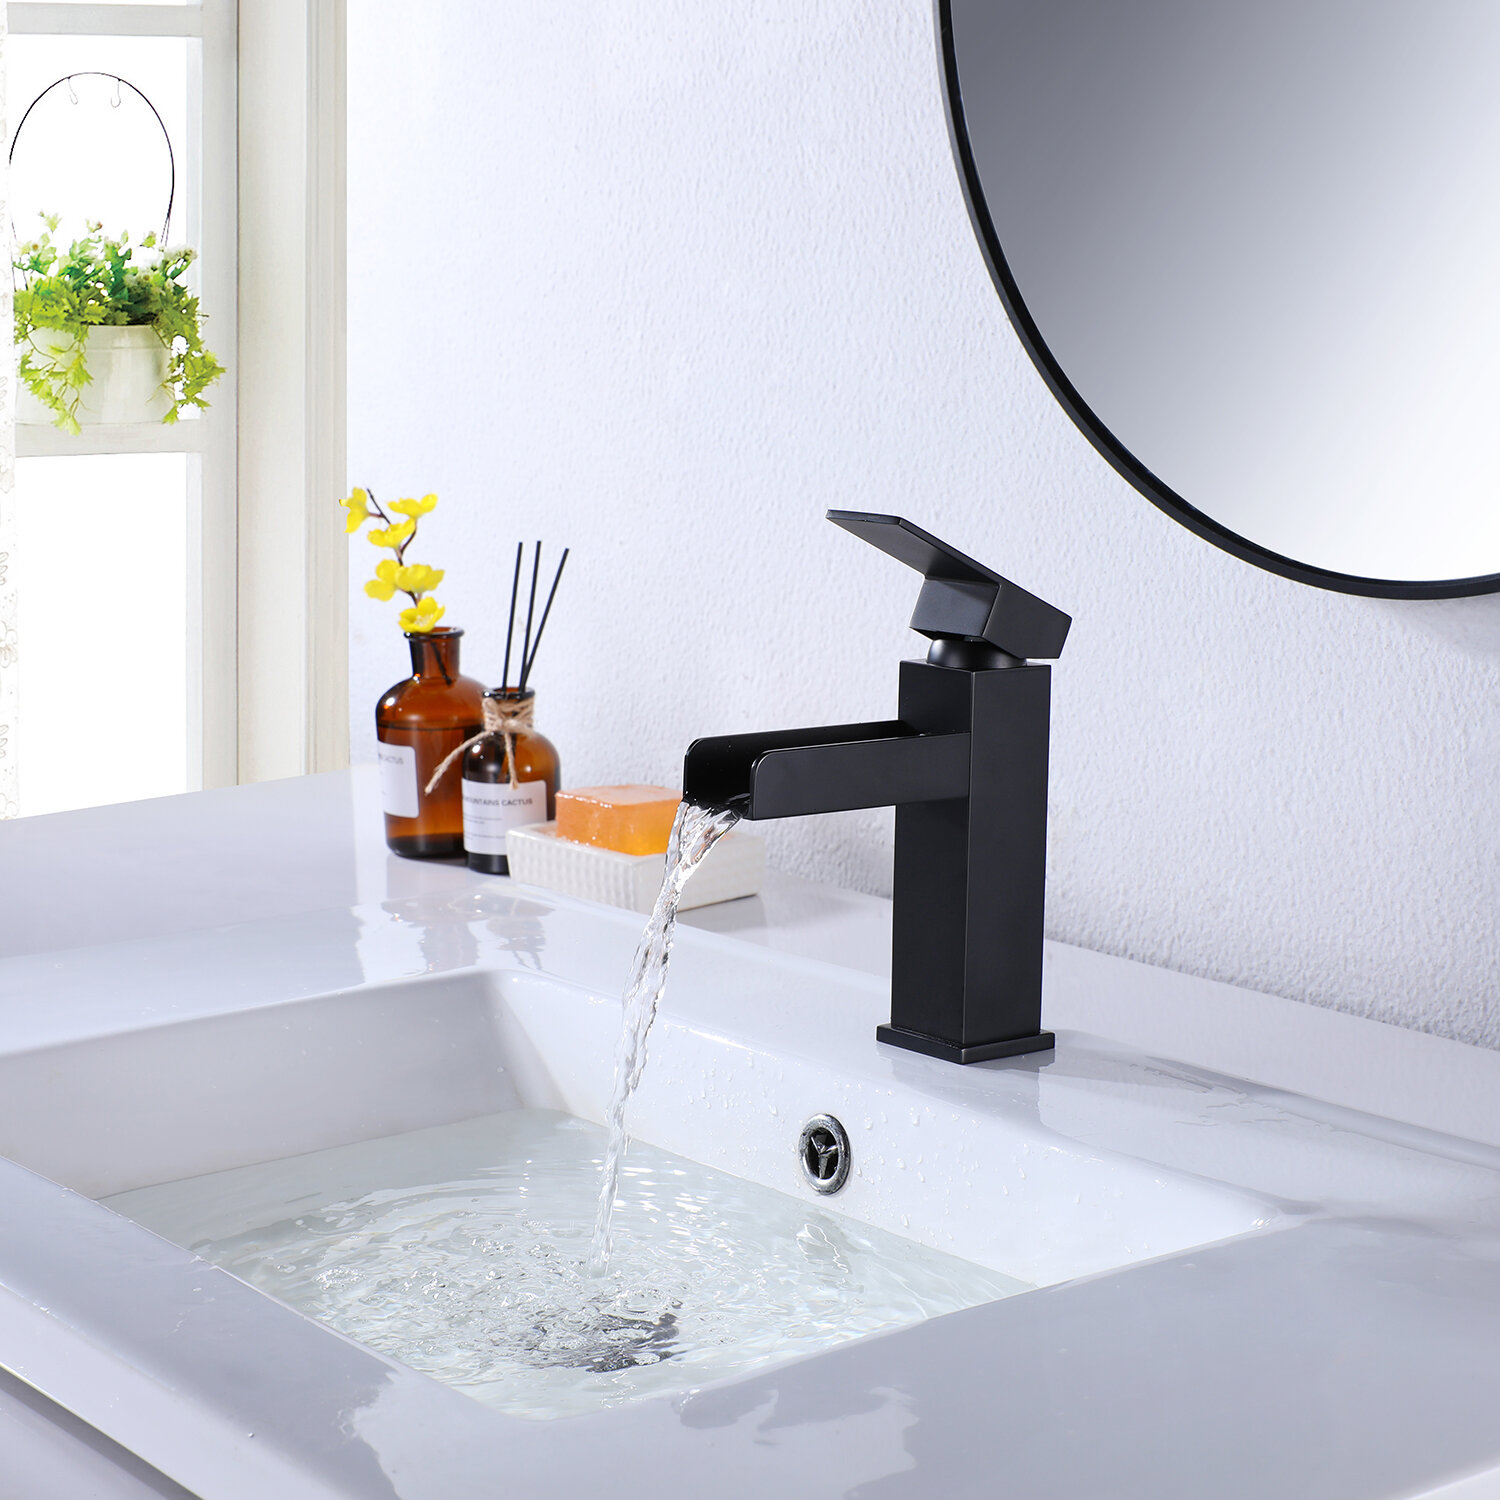 Picture of: Modland Contemporary Matte Black Waterfall Bathroom Vanity Sink Faucet Bathroom Sink Faucet With Deck Plate Wayfair Ca